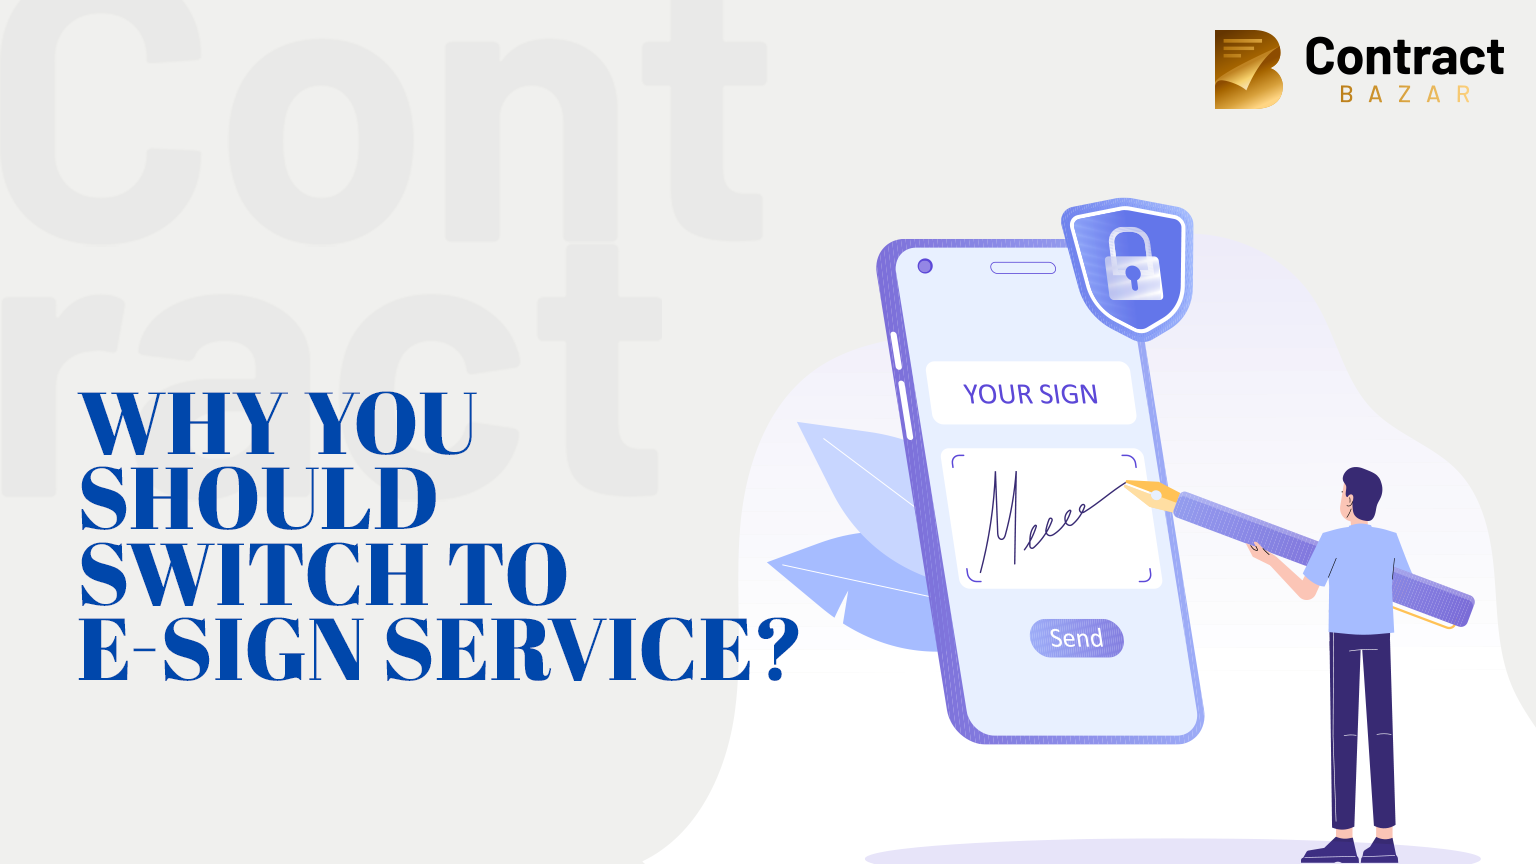 Why you should switch to E-sign service